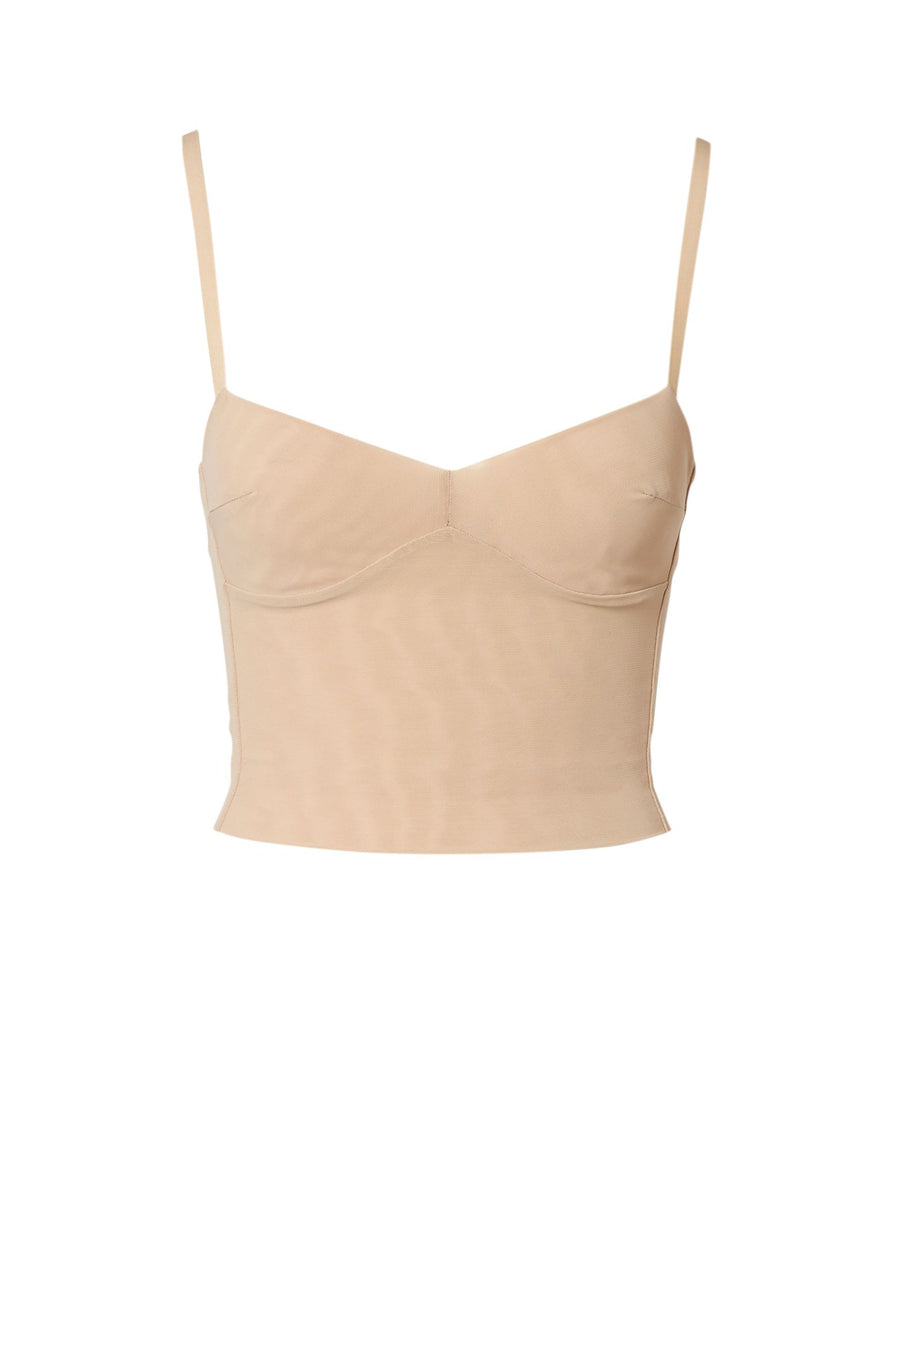 MESH BRALET, SHOESTRING STRAPS WITH BODICE, COLOR FLESH